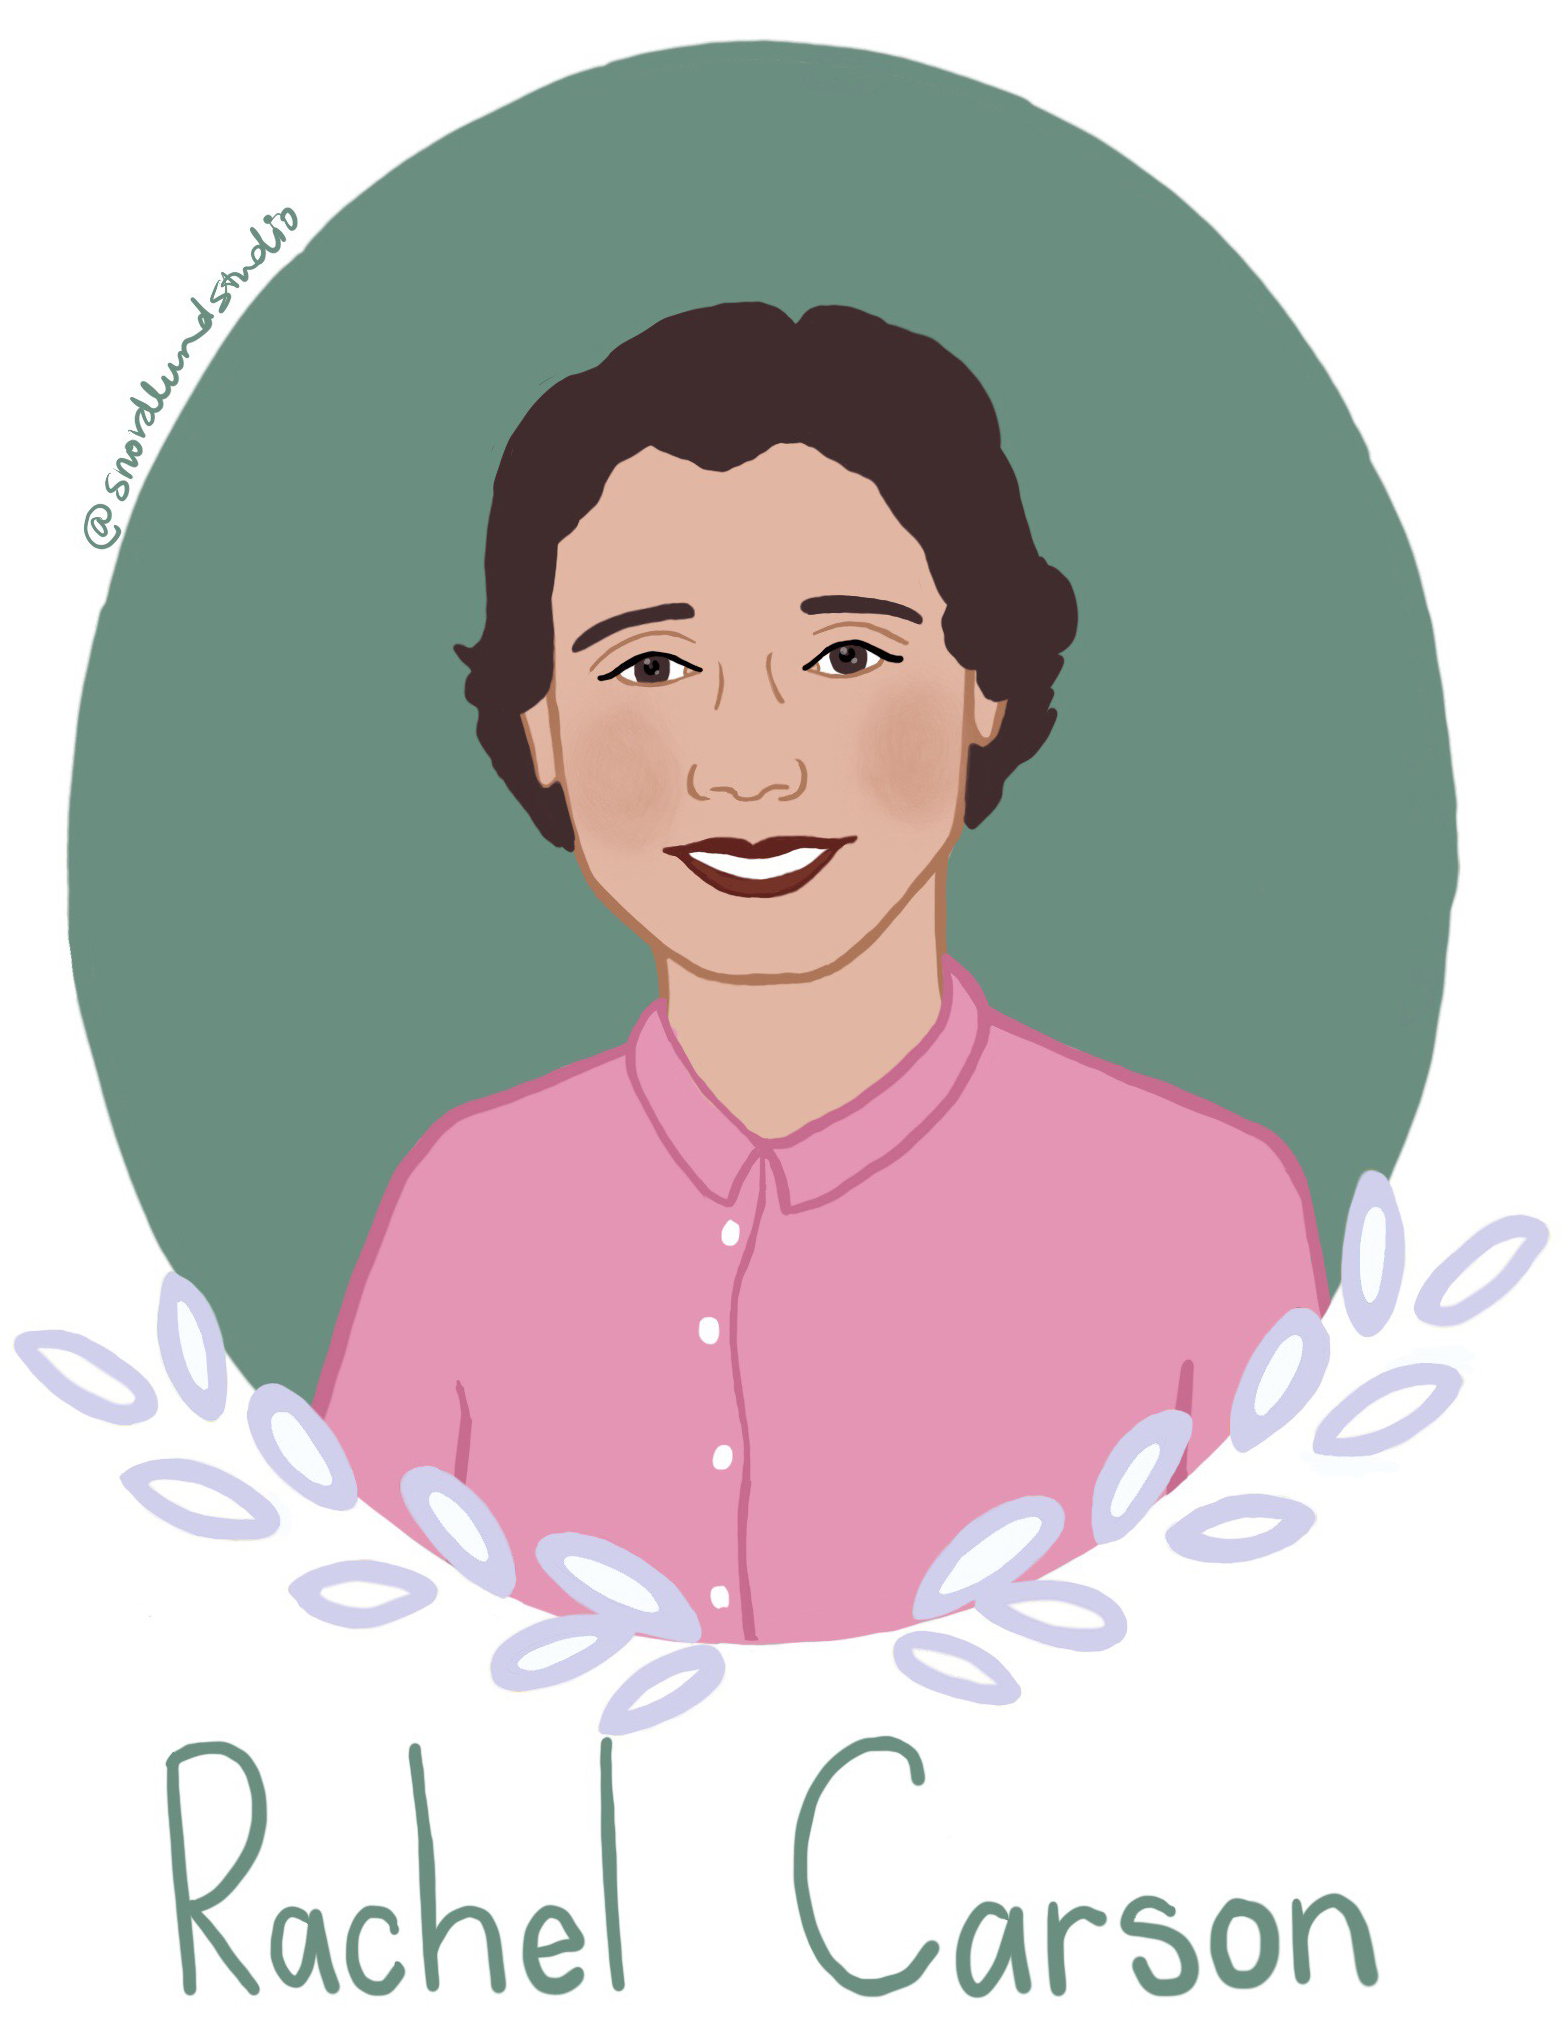 49. Rachel Carson - Rachel Carson (1907-1964) was a marine biologist, conservationist, and author. Carson's most famous book, Silent Spring, helped advance the global environmental movement by discussing harmful effects of pesticides.